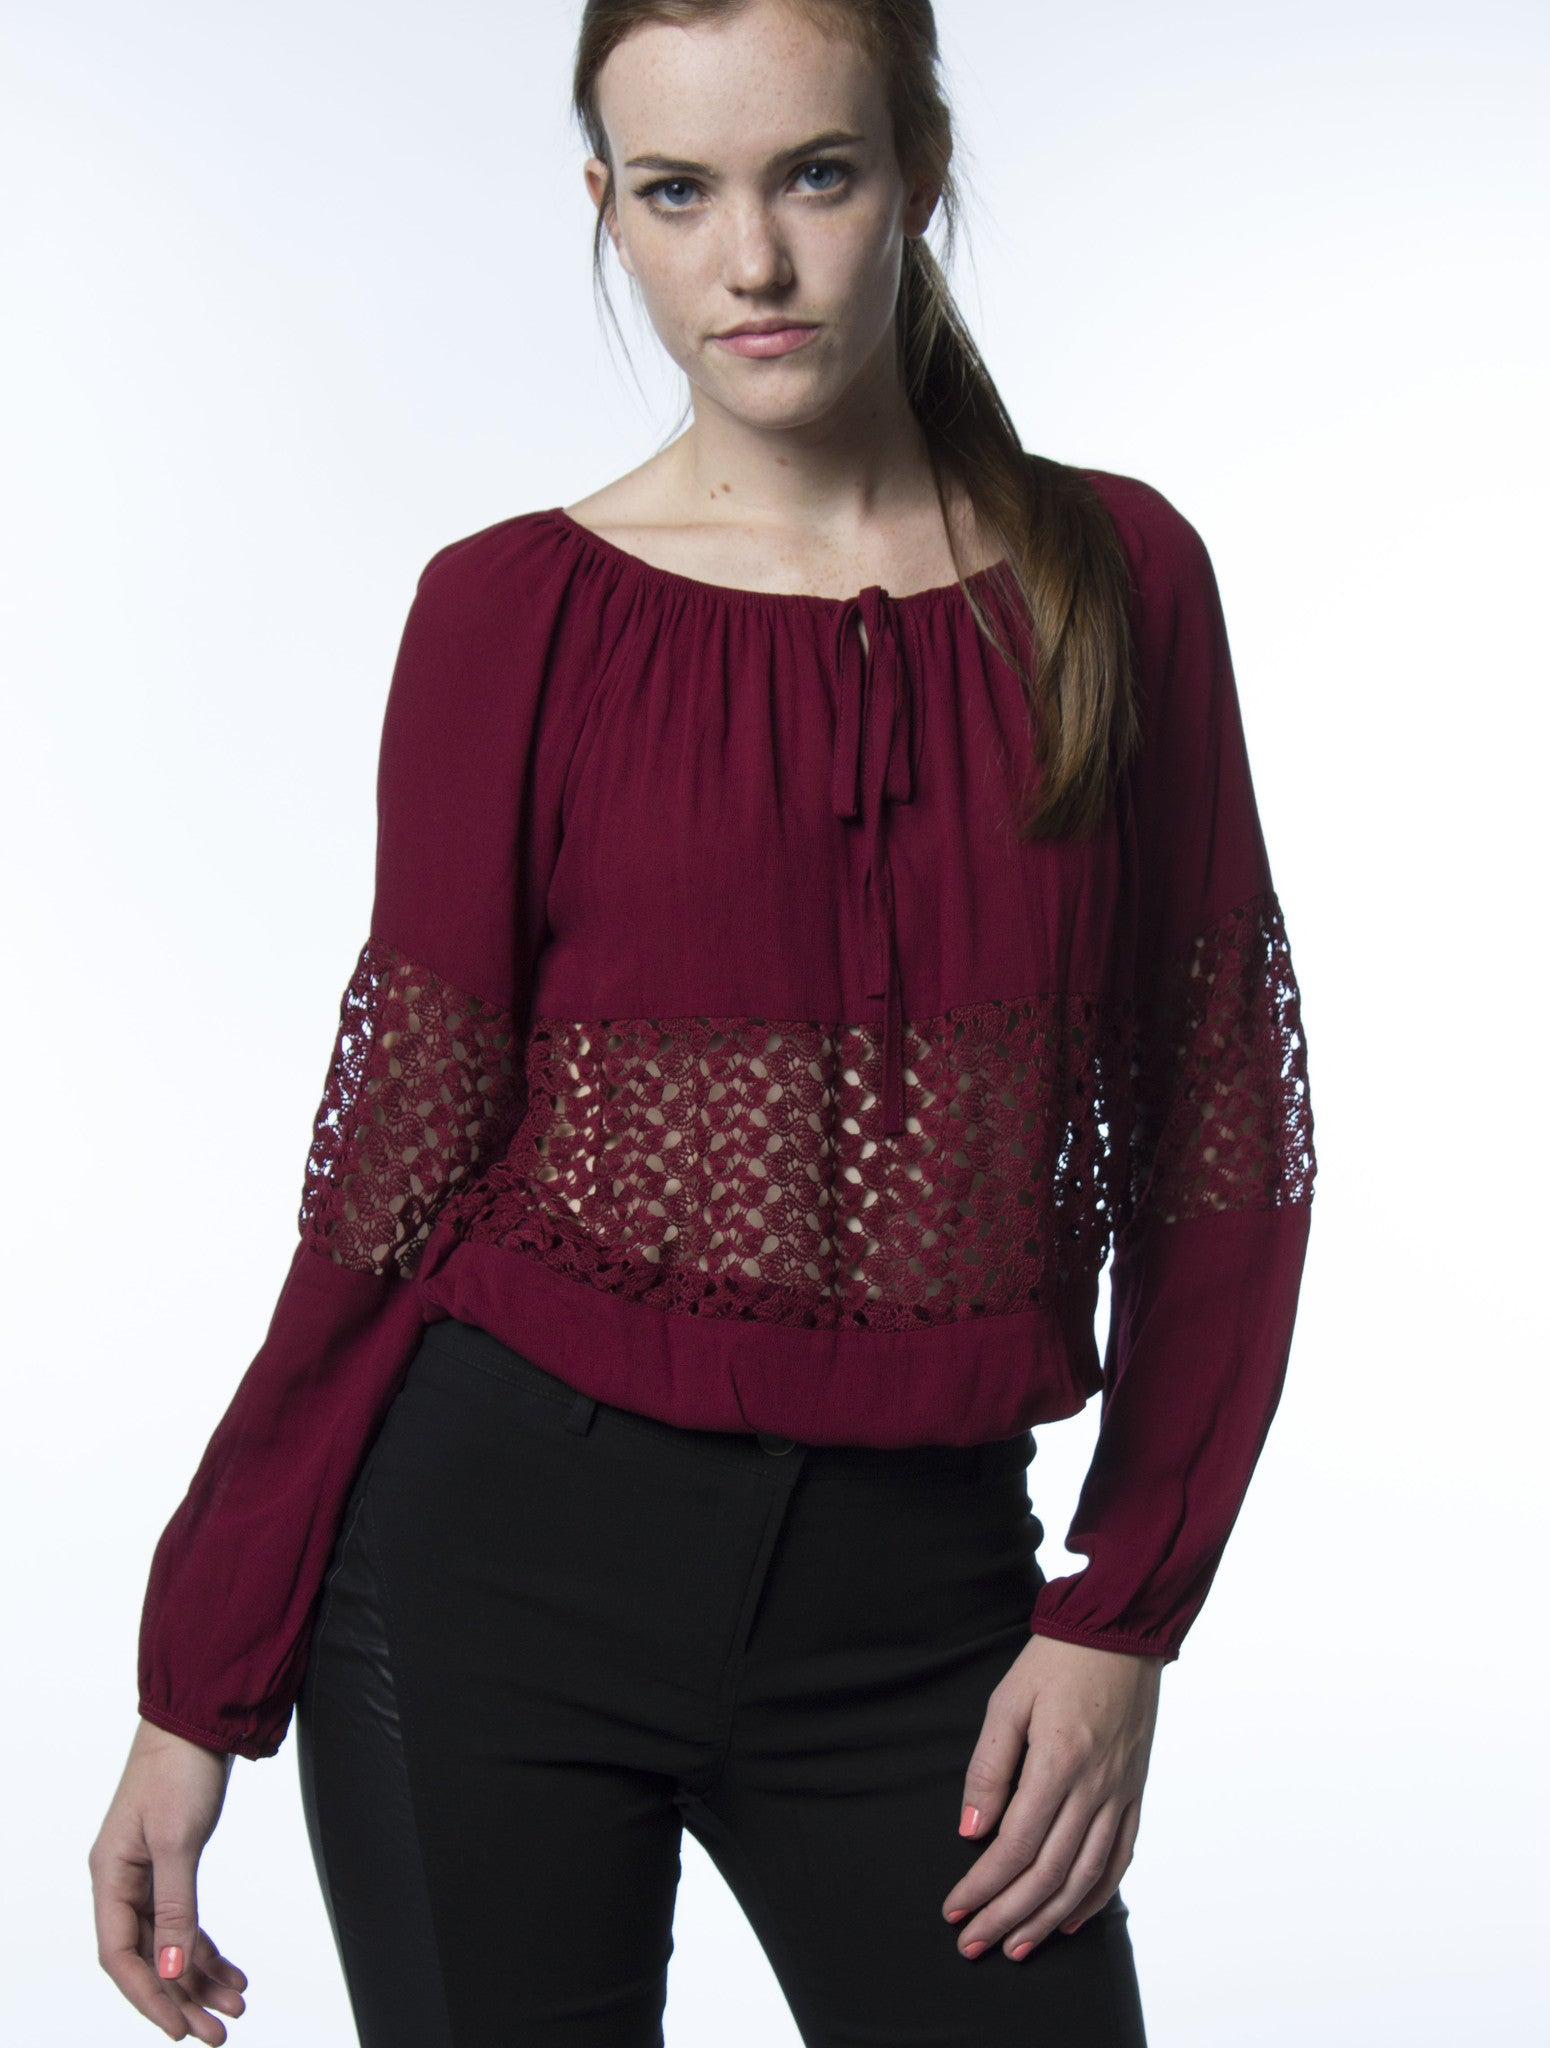 long sleeve burgundy wine top